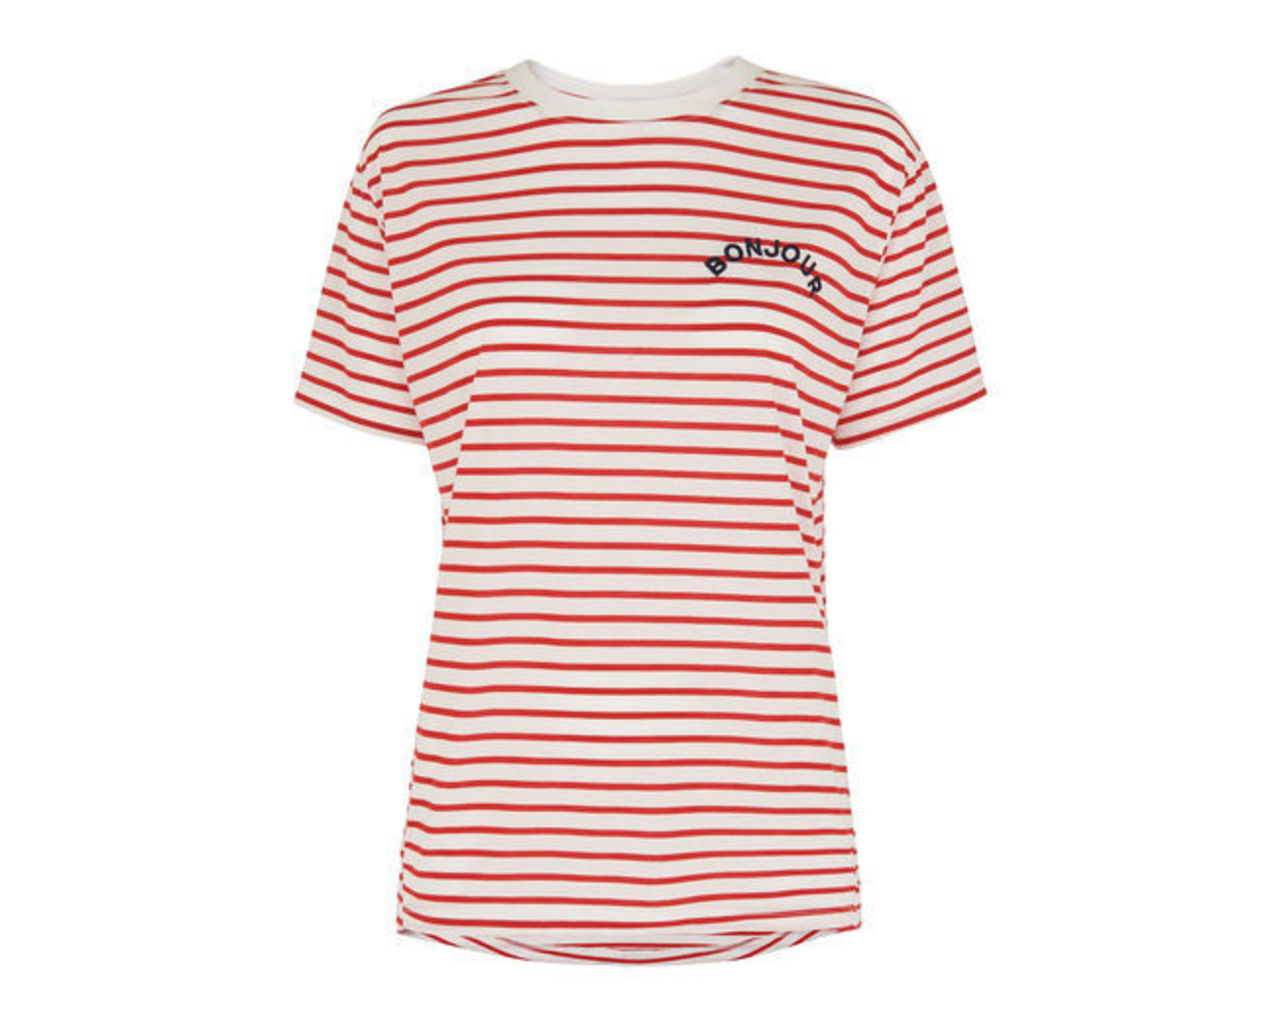 Bonjour Embroidered Logo Tee